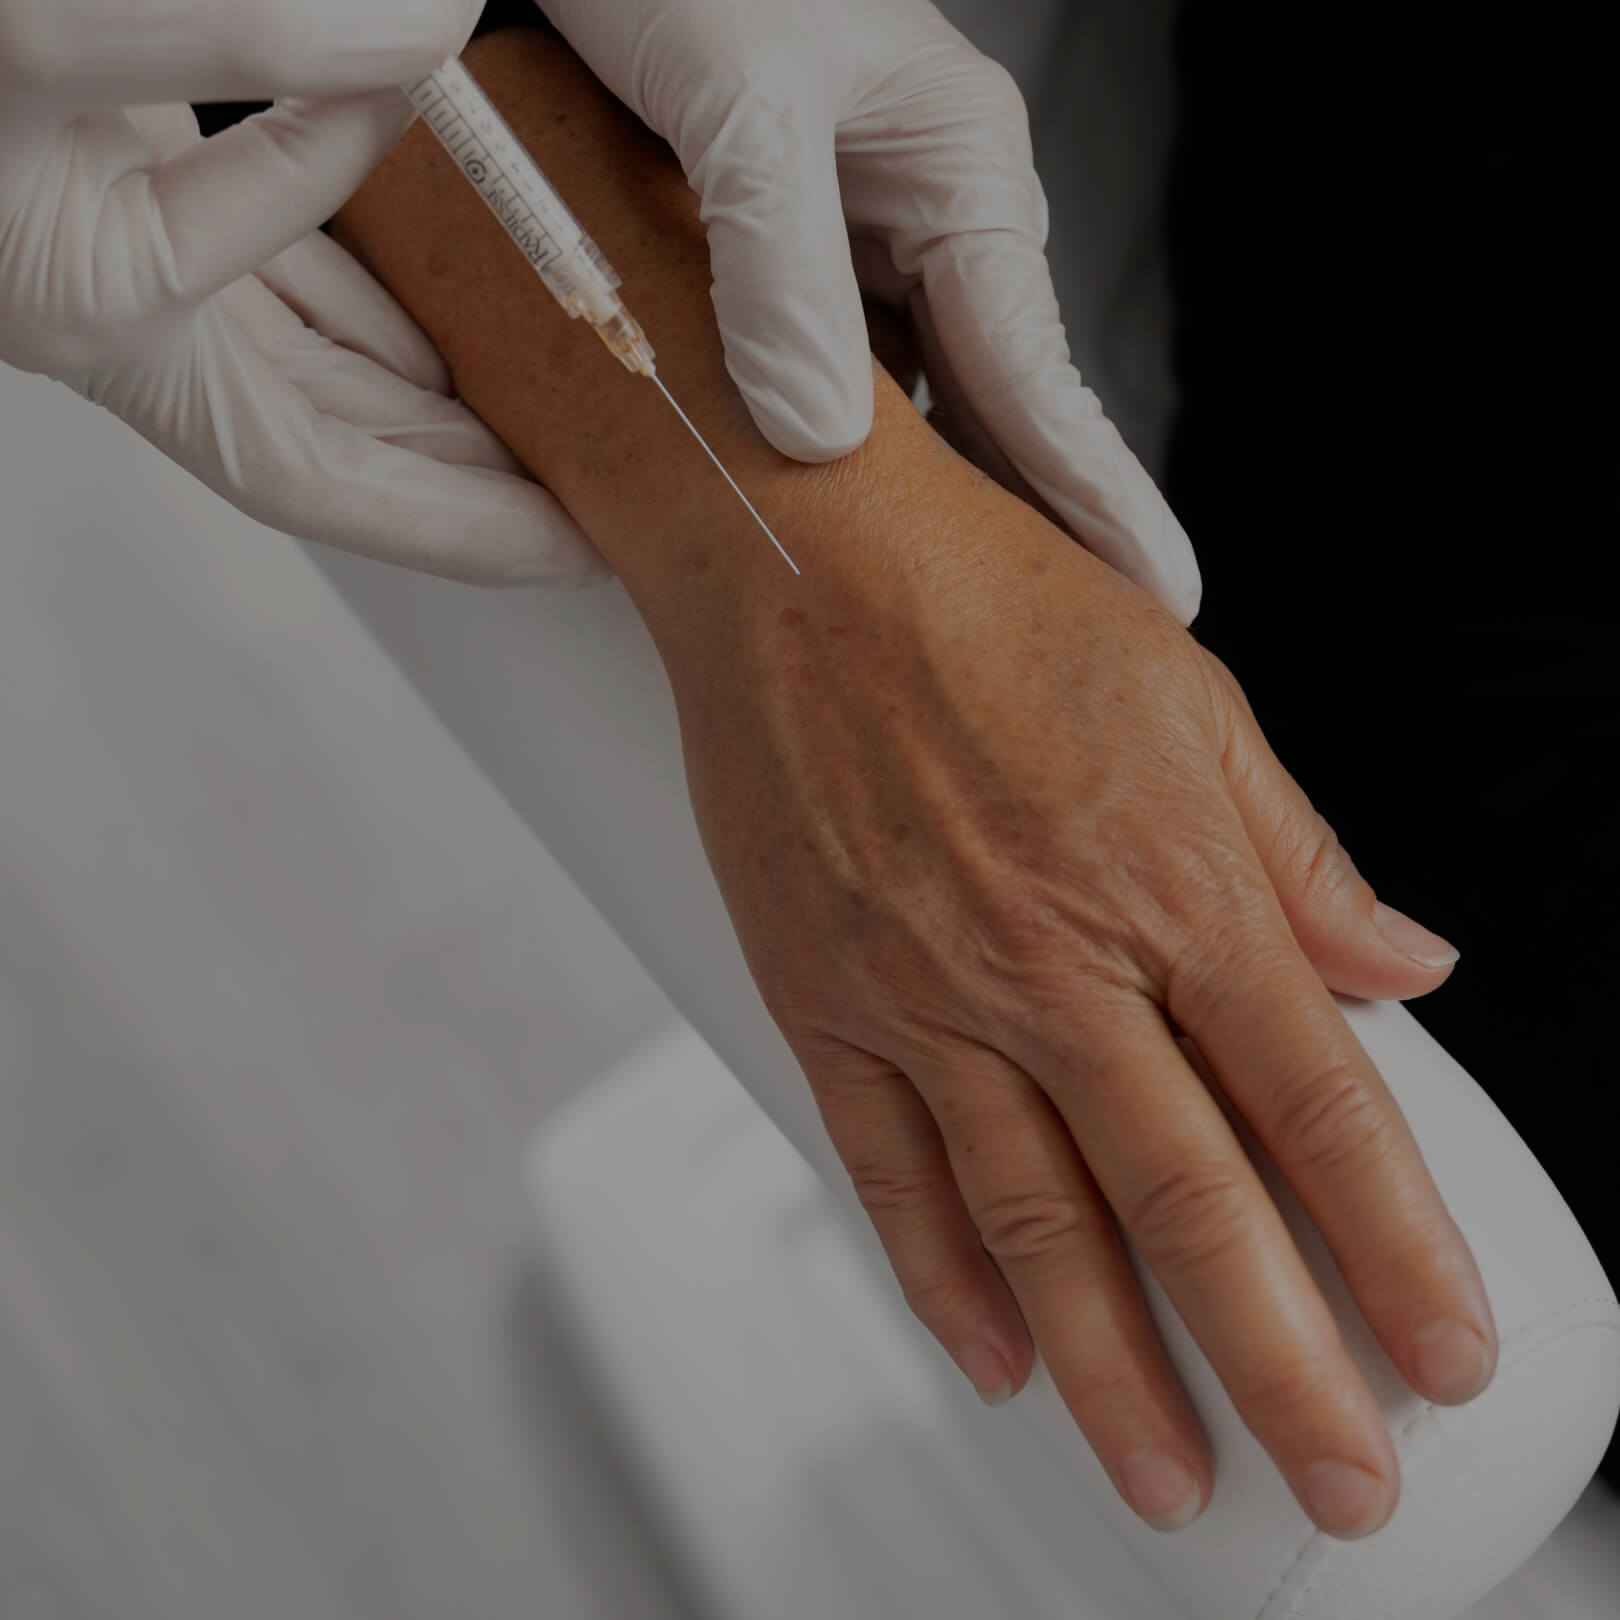 A patient at Clinique Chloé receiving dermal filler injections in their right hand for hand rejuvenation